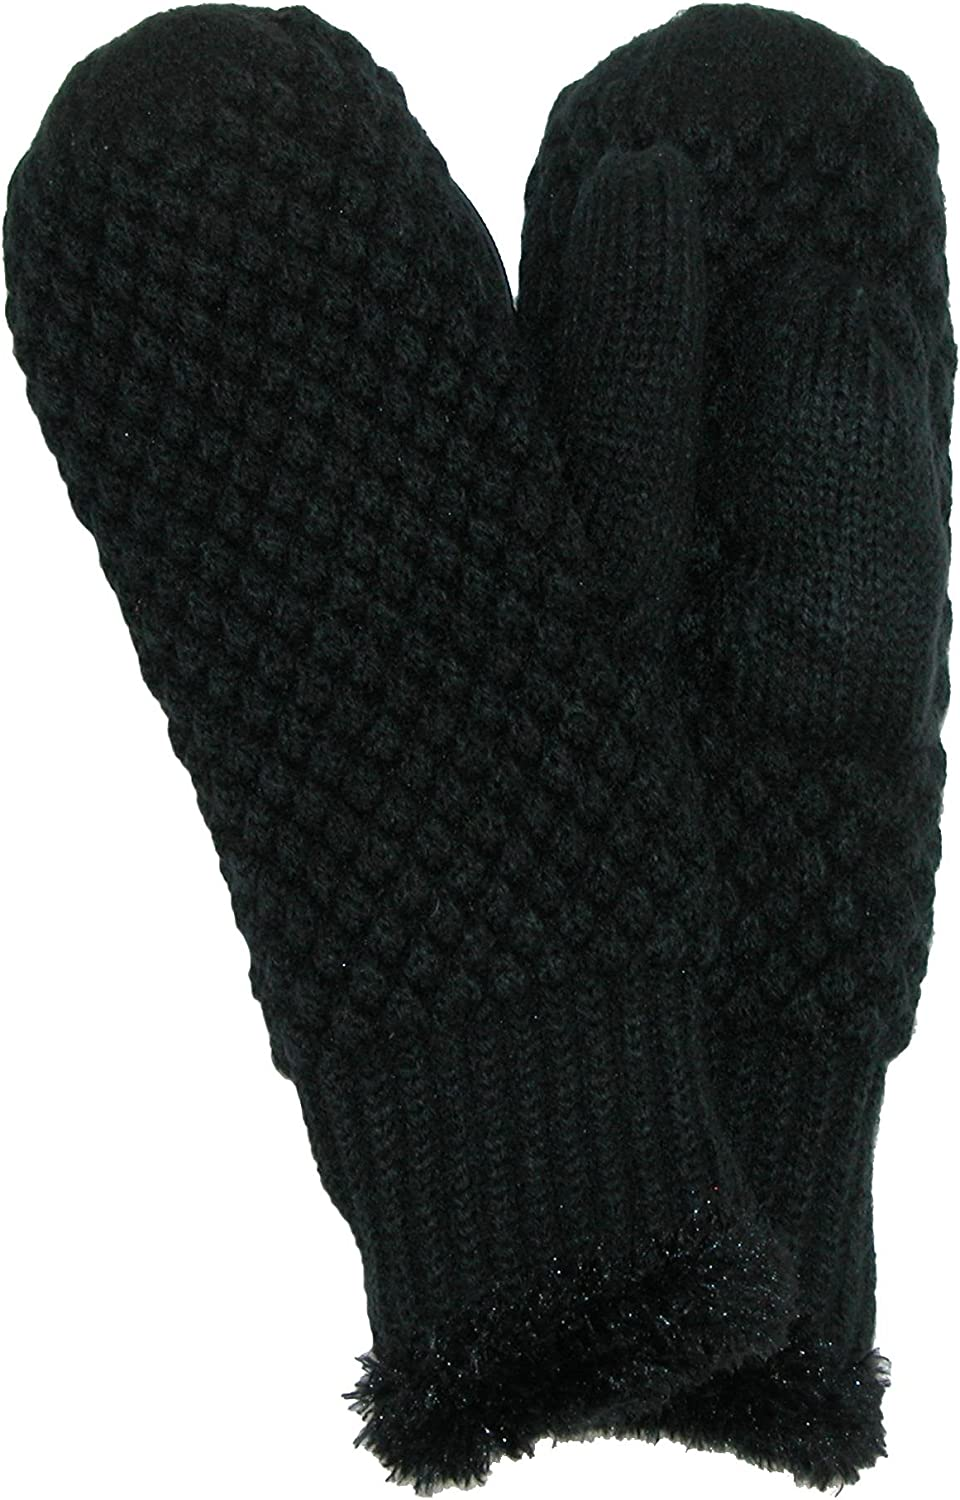 David & Young Women's Popcorn Knit Mittens, Black